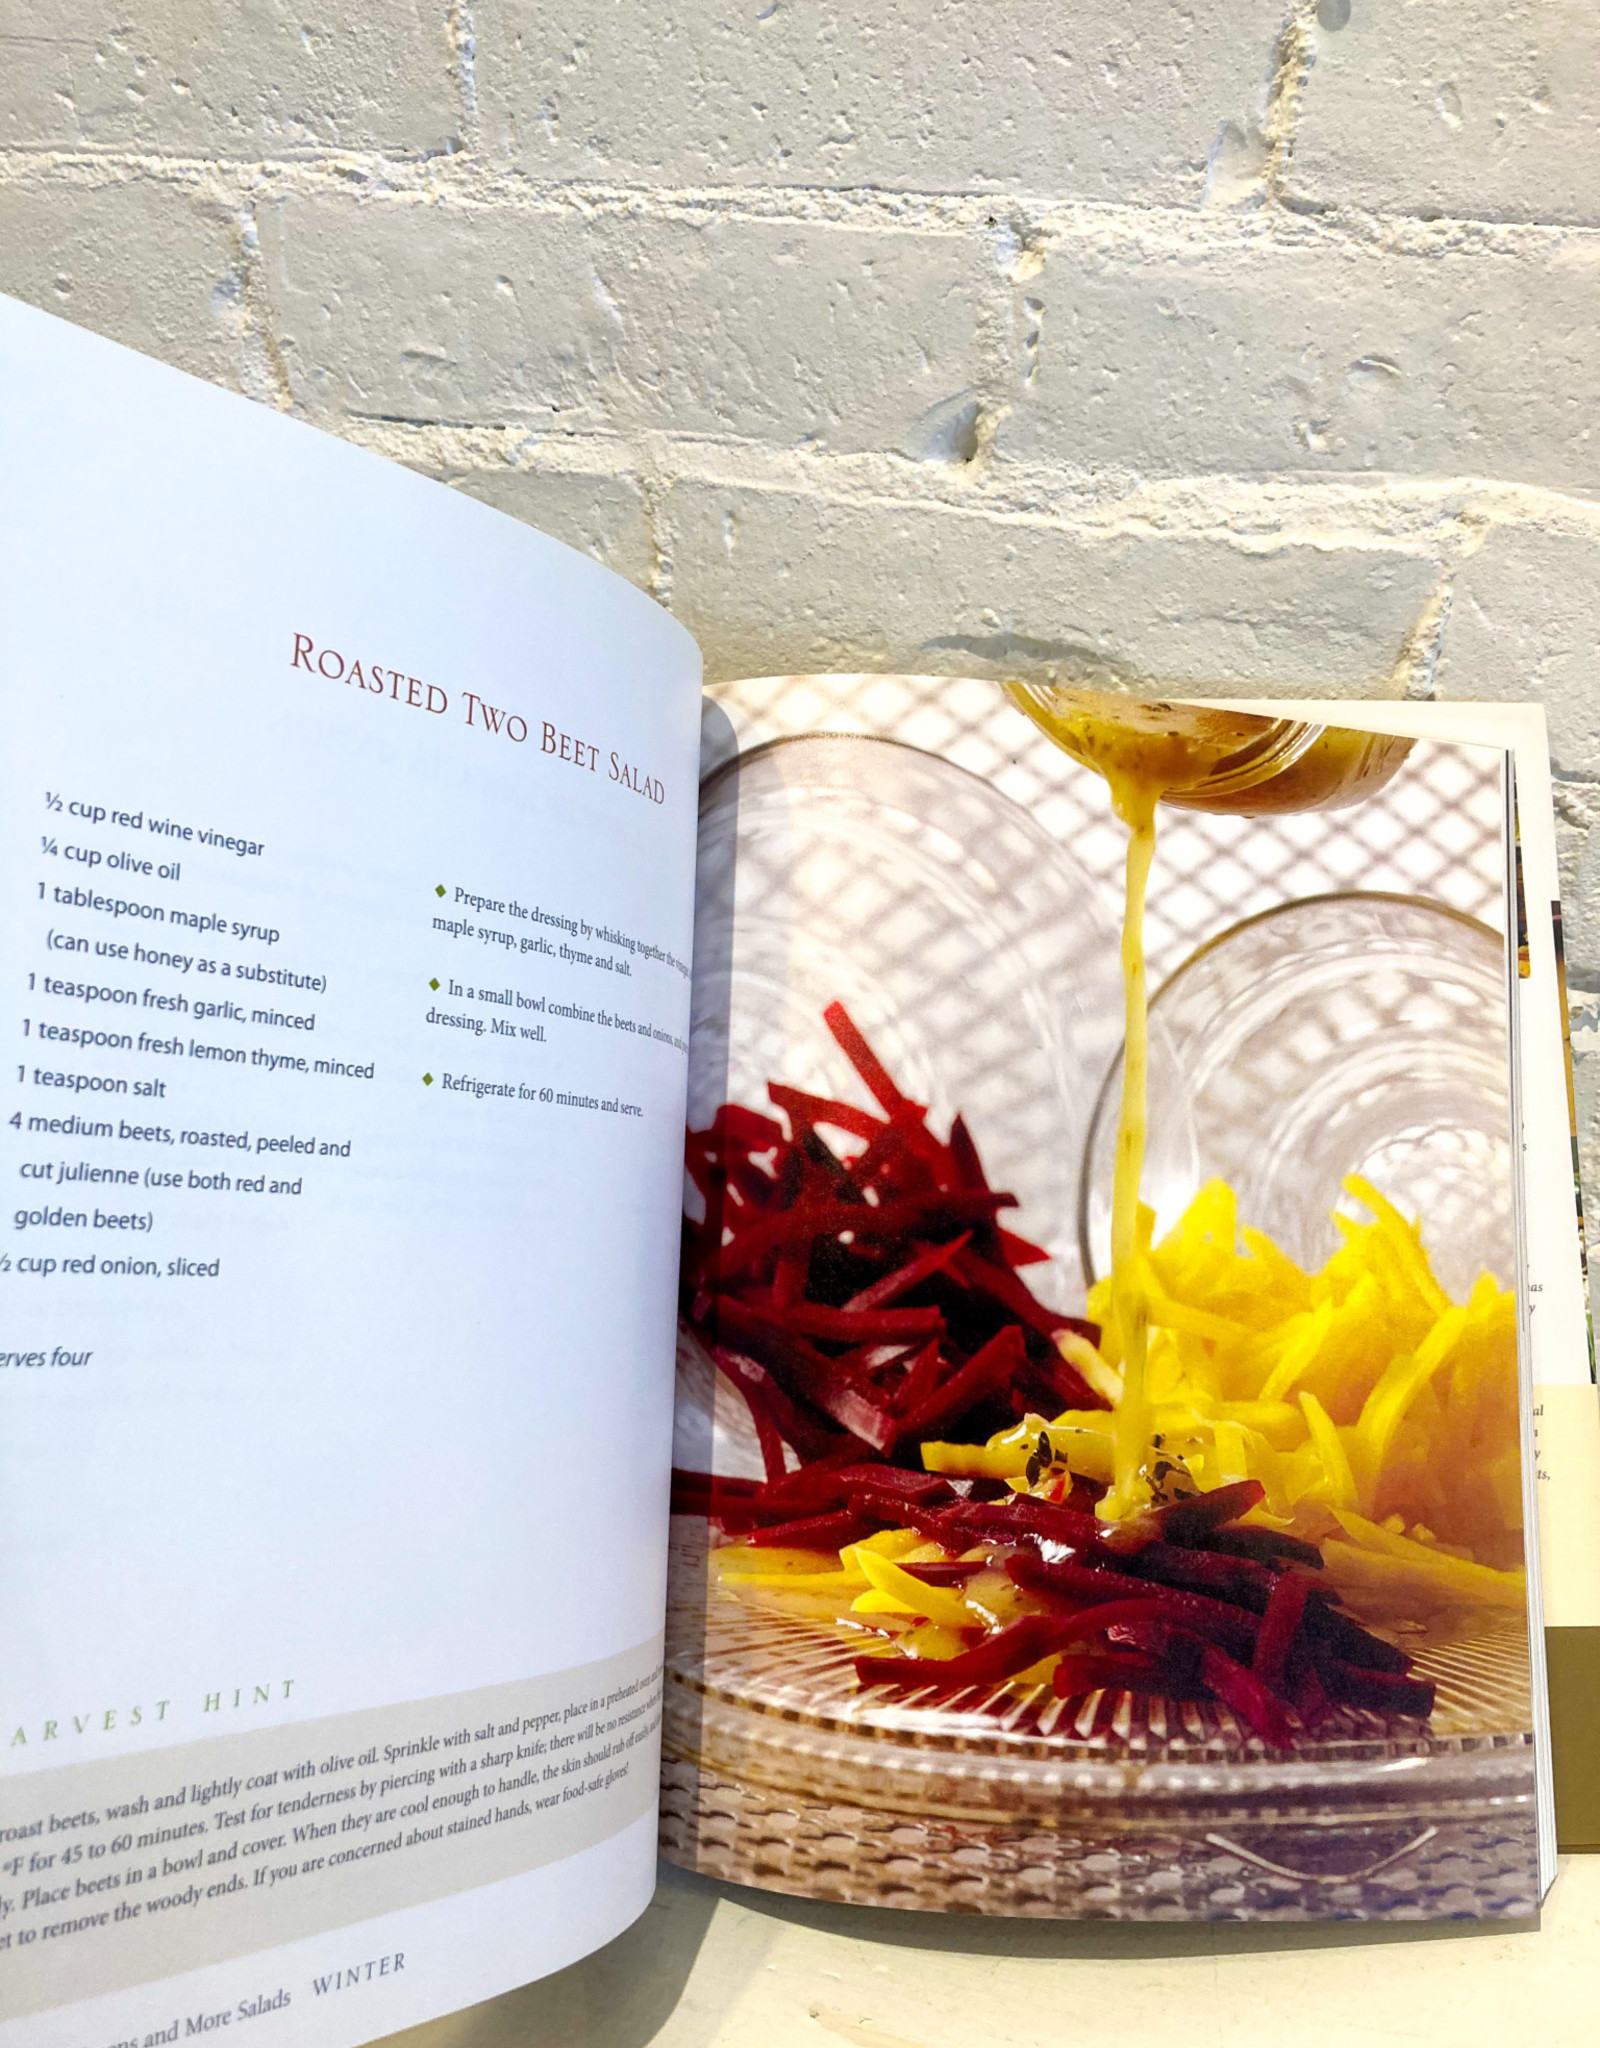 Cooking Close to Home: A Year of Seasonal Recipes by Diane Imrie & RIchard Jarmusz